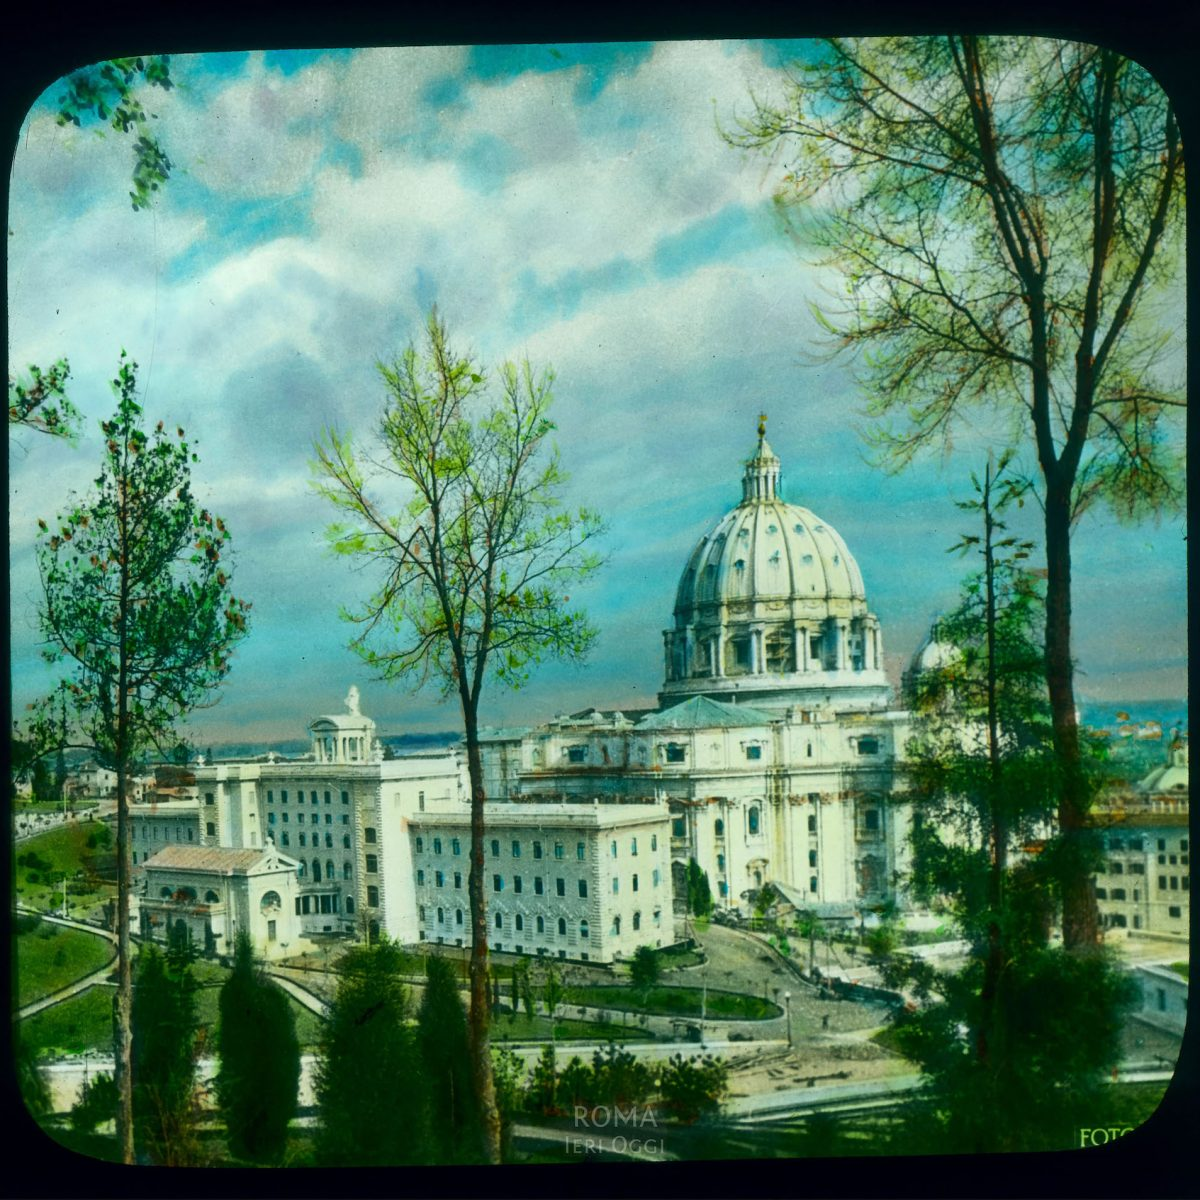 Vatican City. St. Peter's Basilica: view of church and Vatican buildings, from the west View in tinted lantern slide, ca. 1919-1938. The basilica dates from ca. 1506-1626.